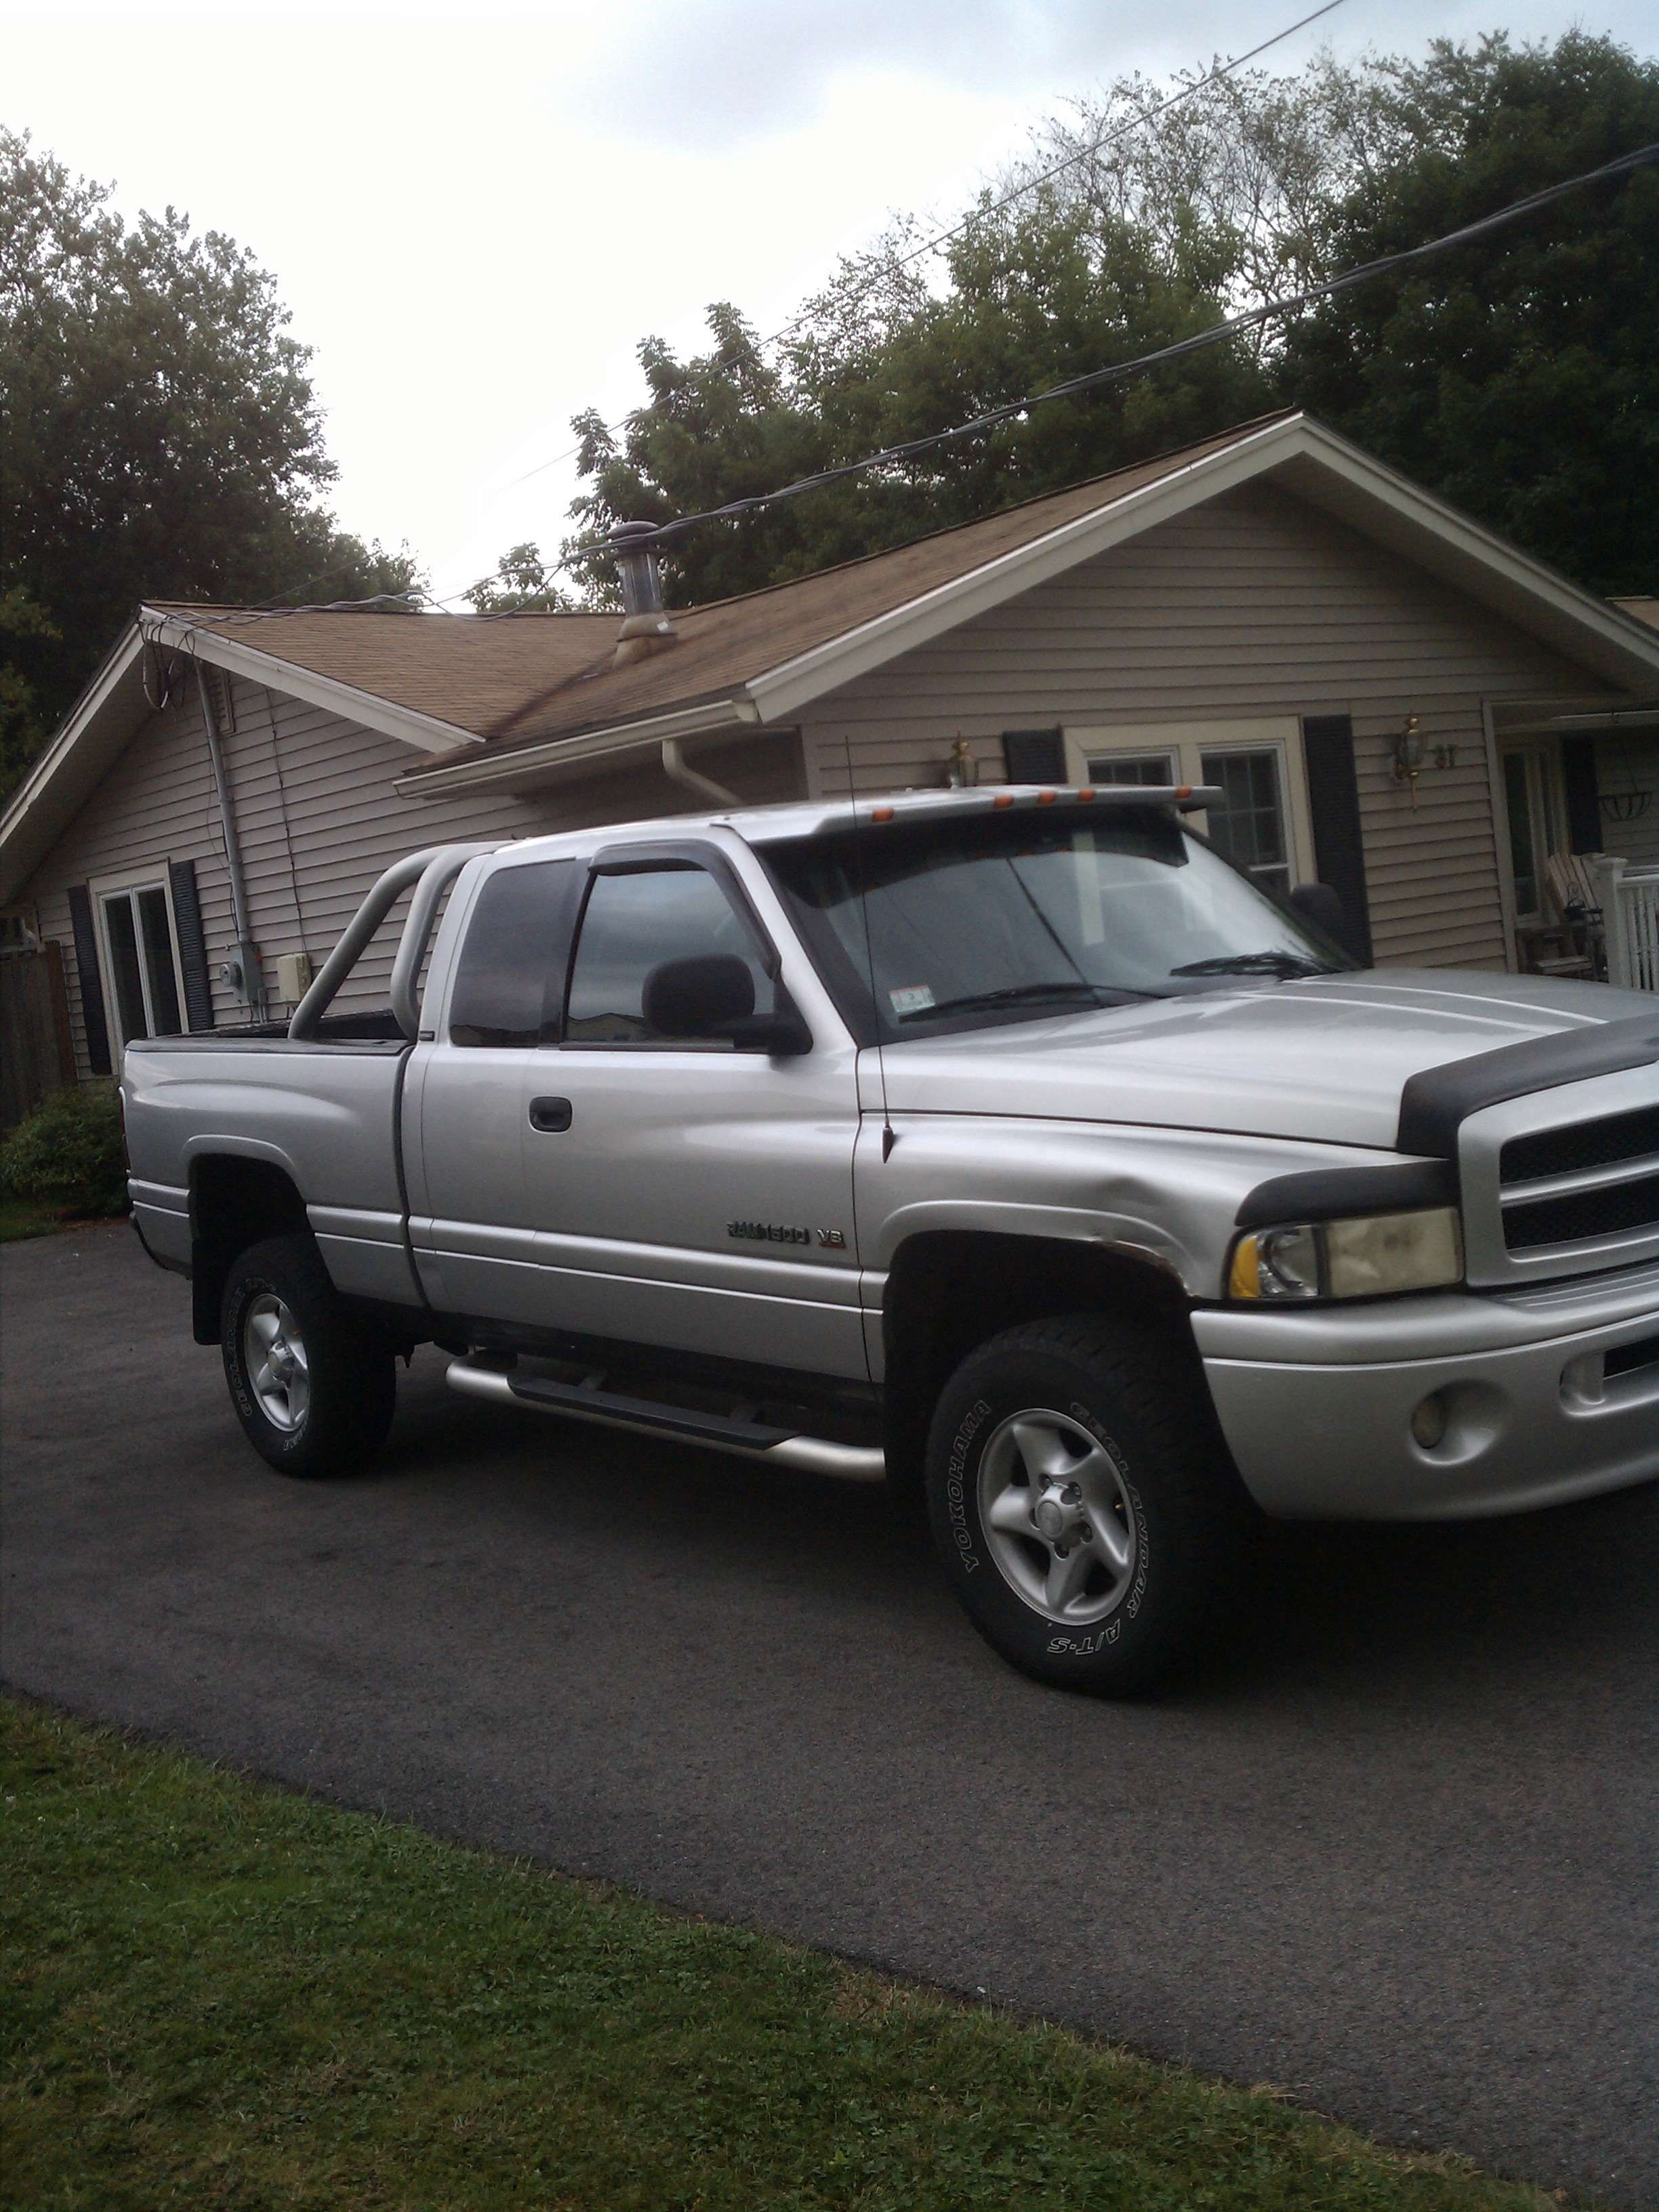 hight resolution of make dodge model ram 1500 truck year 2001 body style extended cab